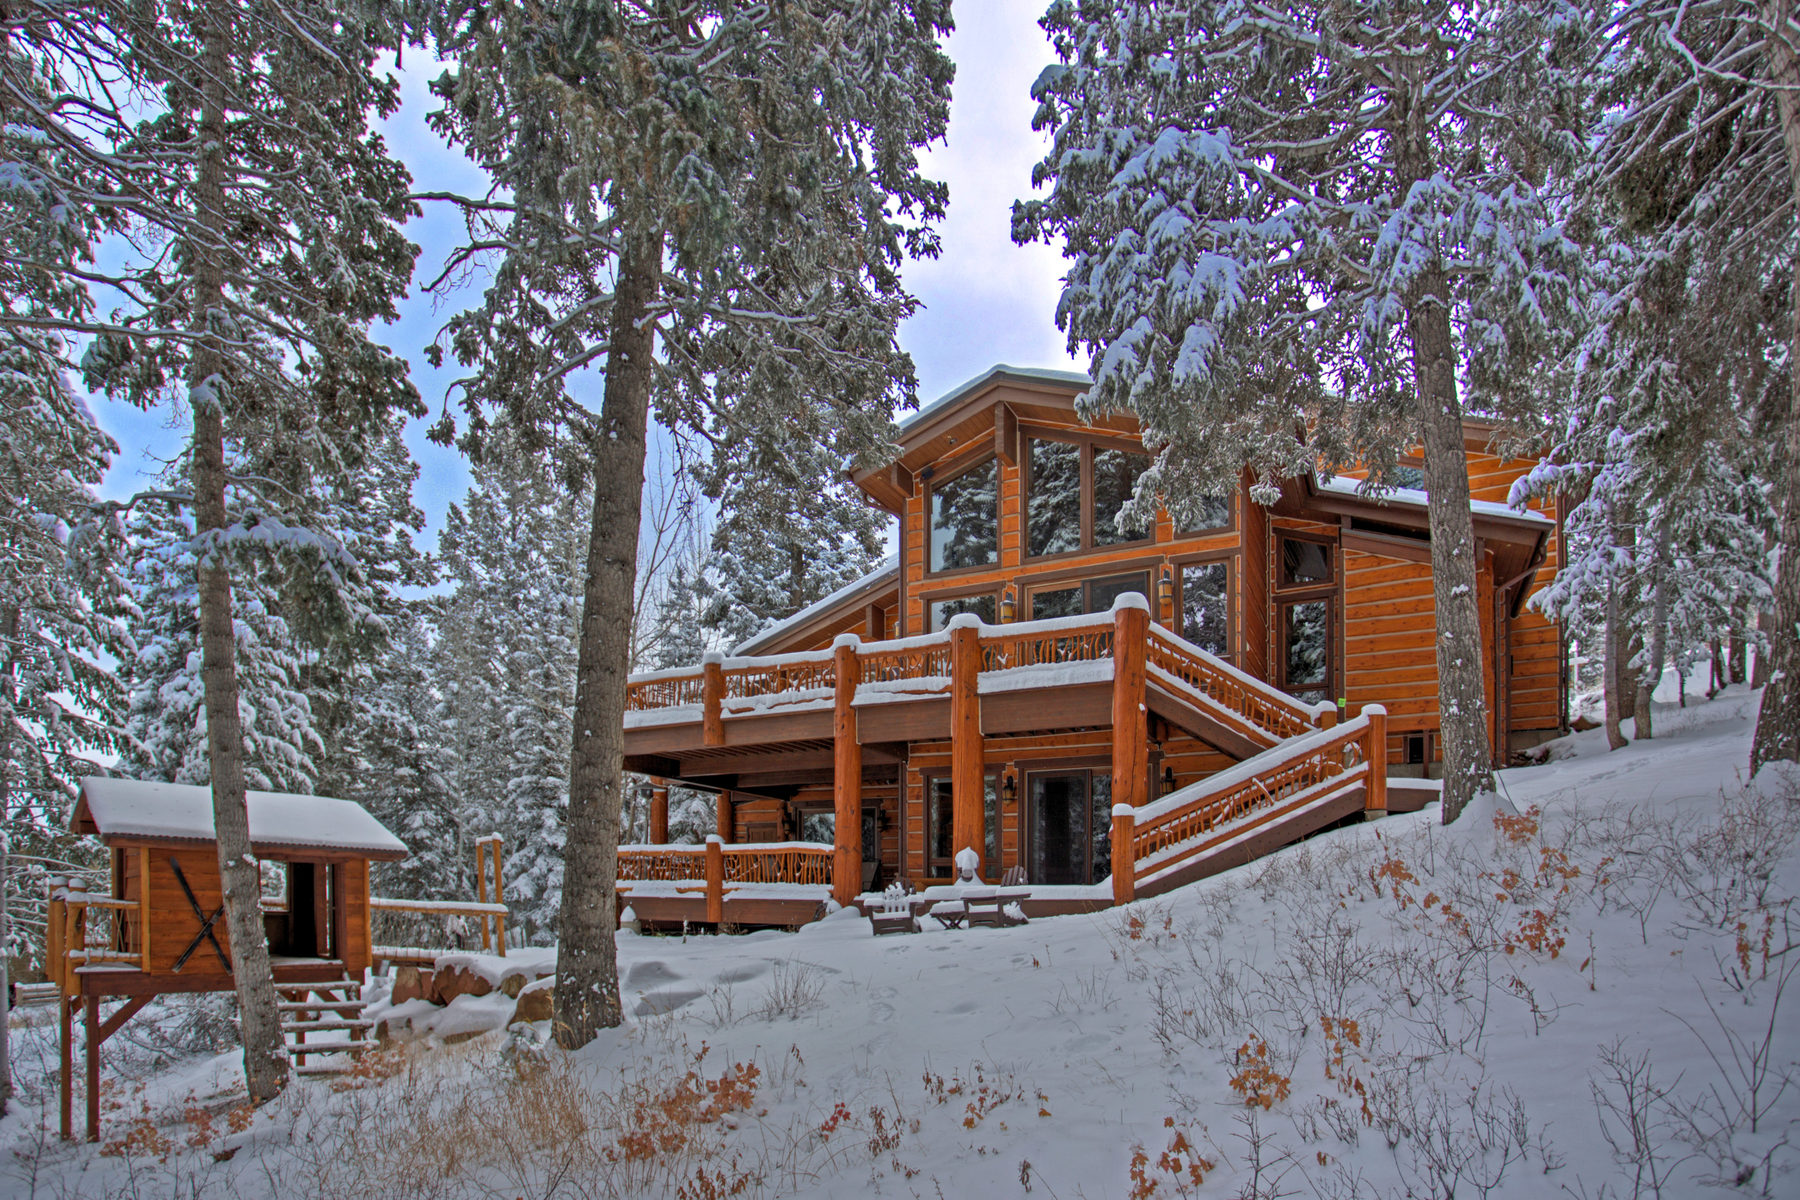 단독 가정 주택 용 매매 에 Ski-In/Ski-Out Deer Valley Home 6935 Silver Lake Dr Park City, 유타 84060 미국